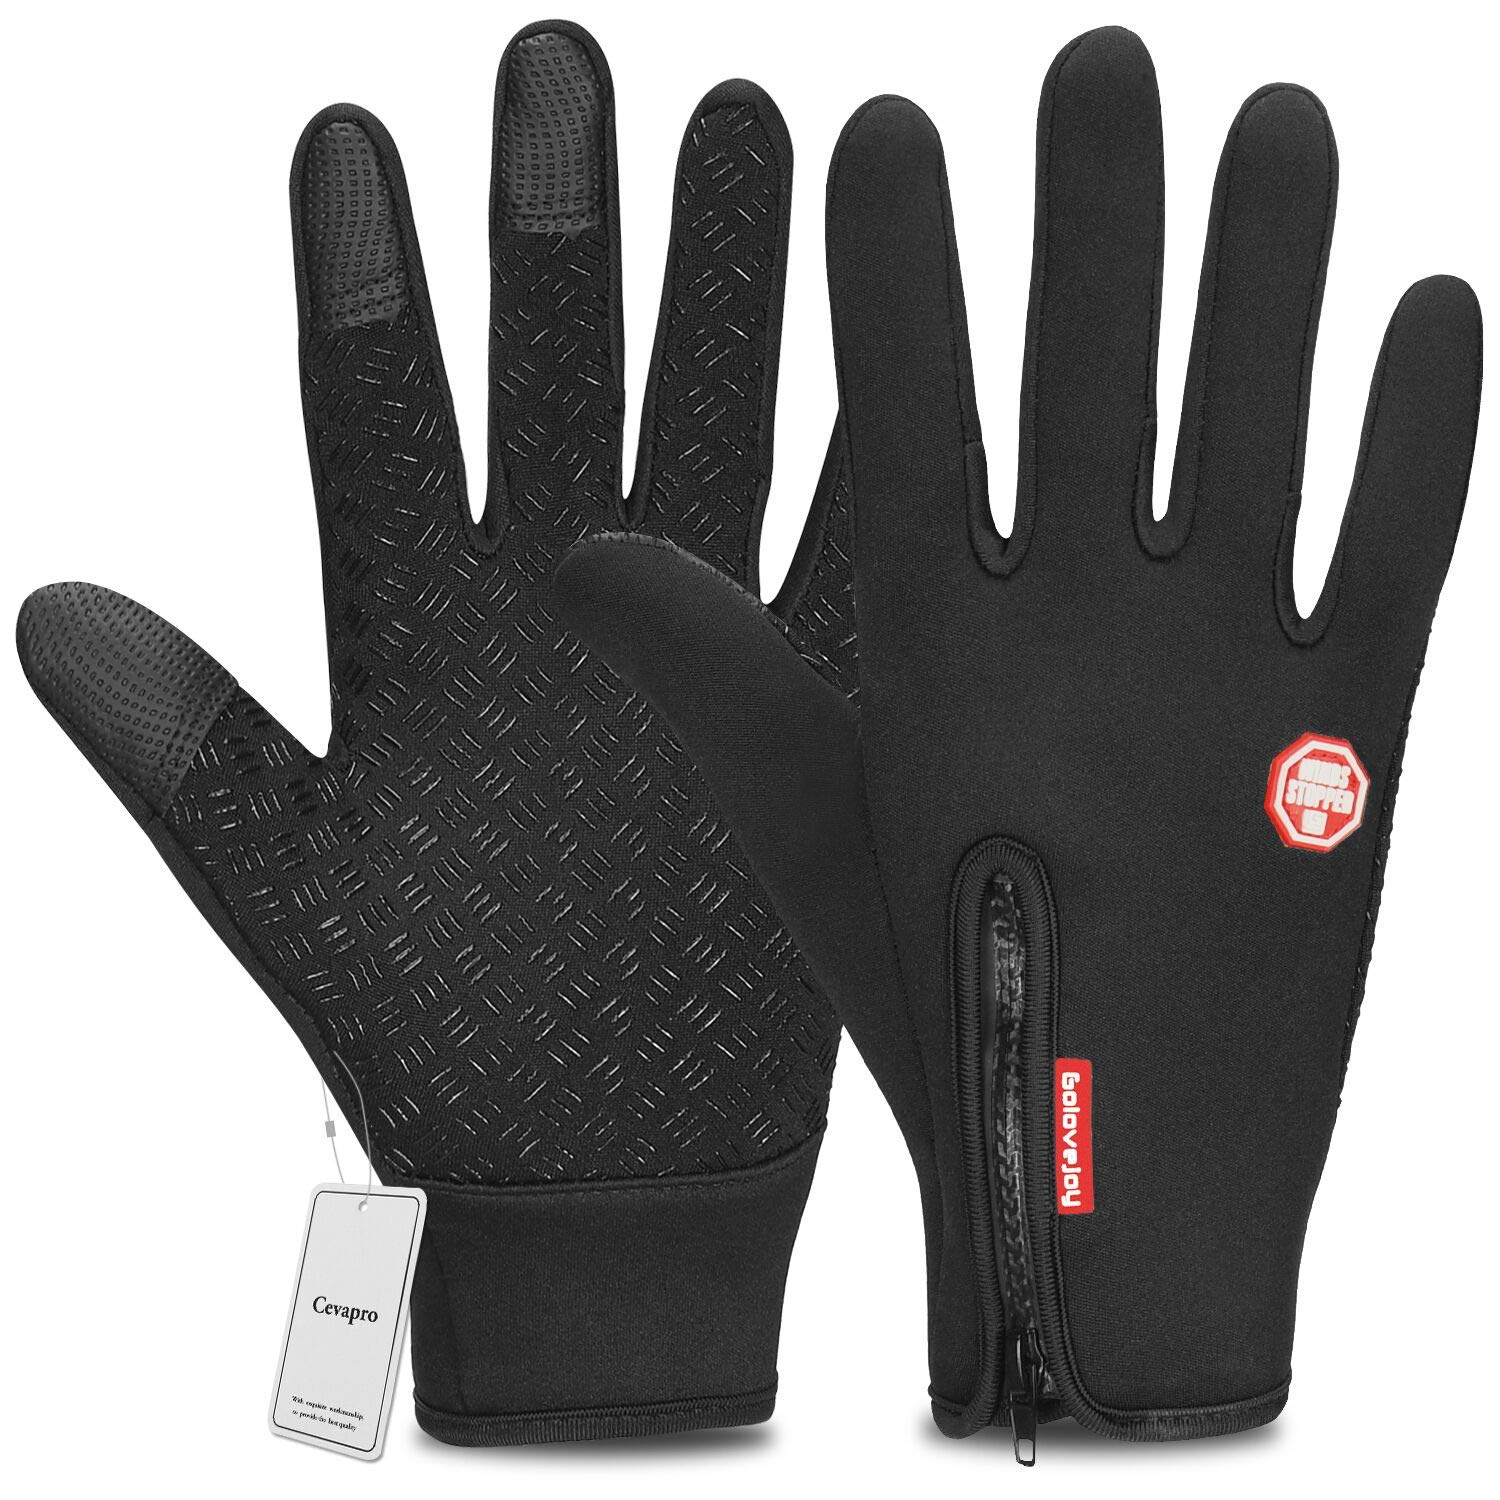 Cevapro Cycling Gloves Touchscreen Winter Warm Gloves for Running Riding